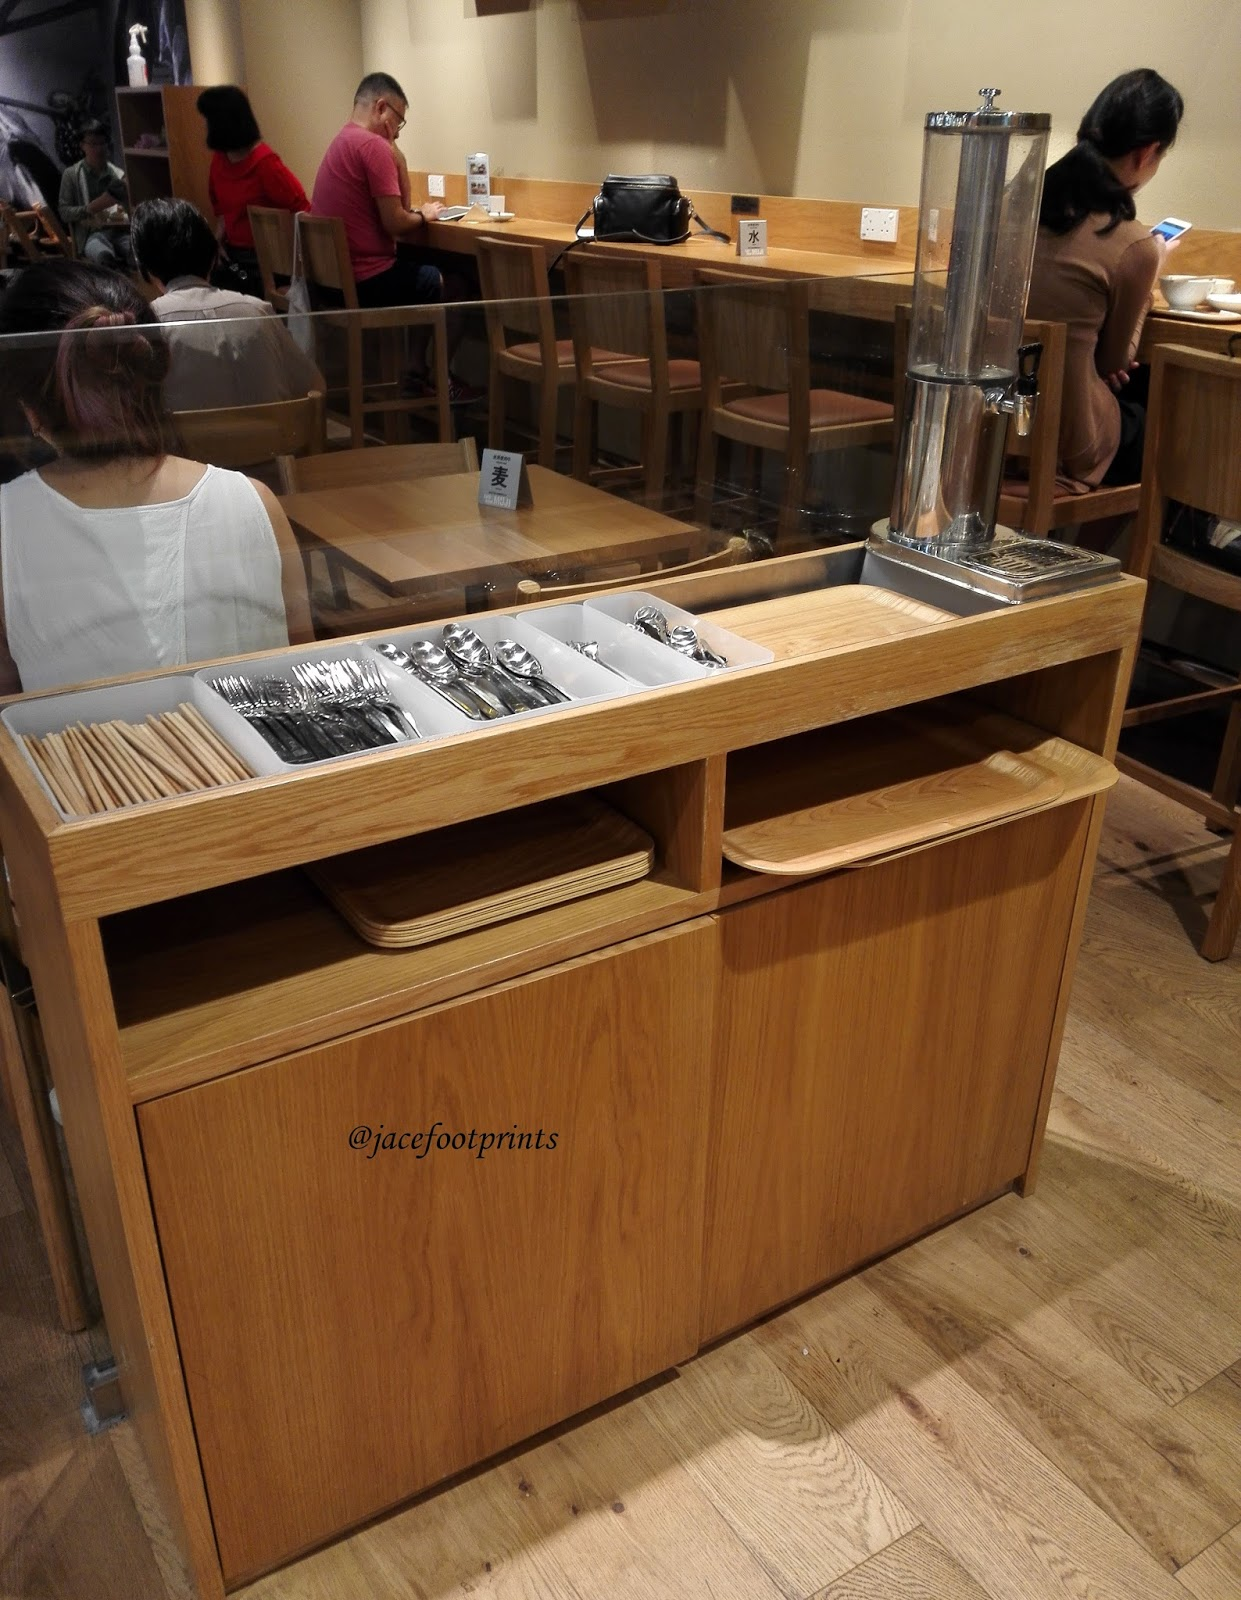 Singapore] Café & Meal MUJI Japanese Cafe In Paragon Just